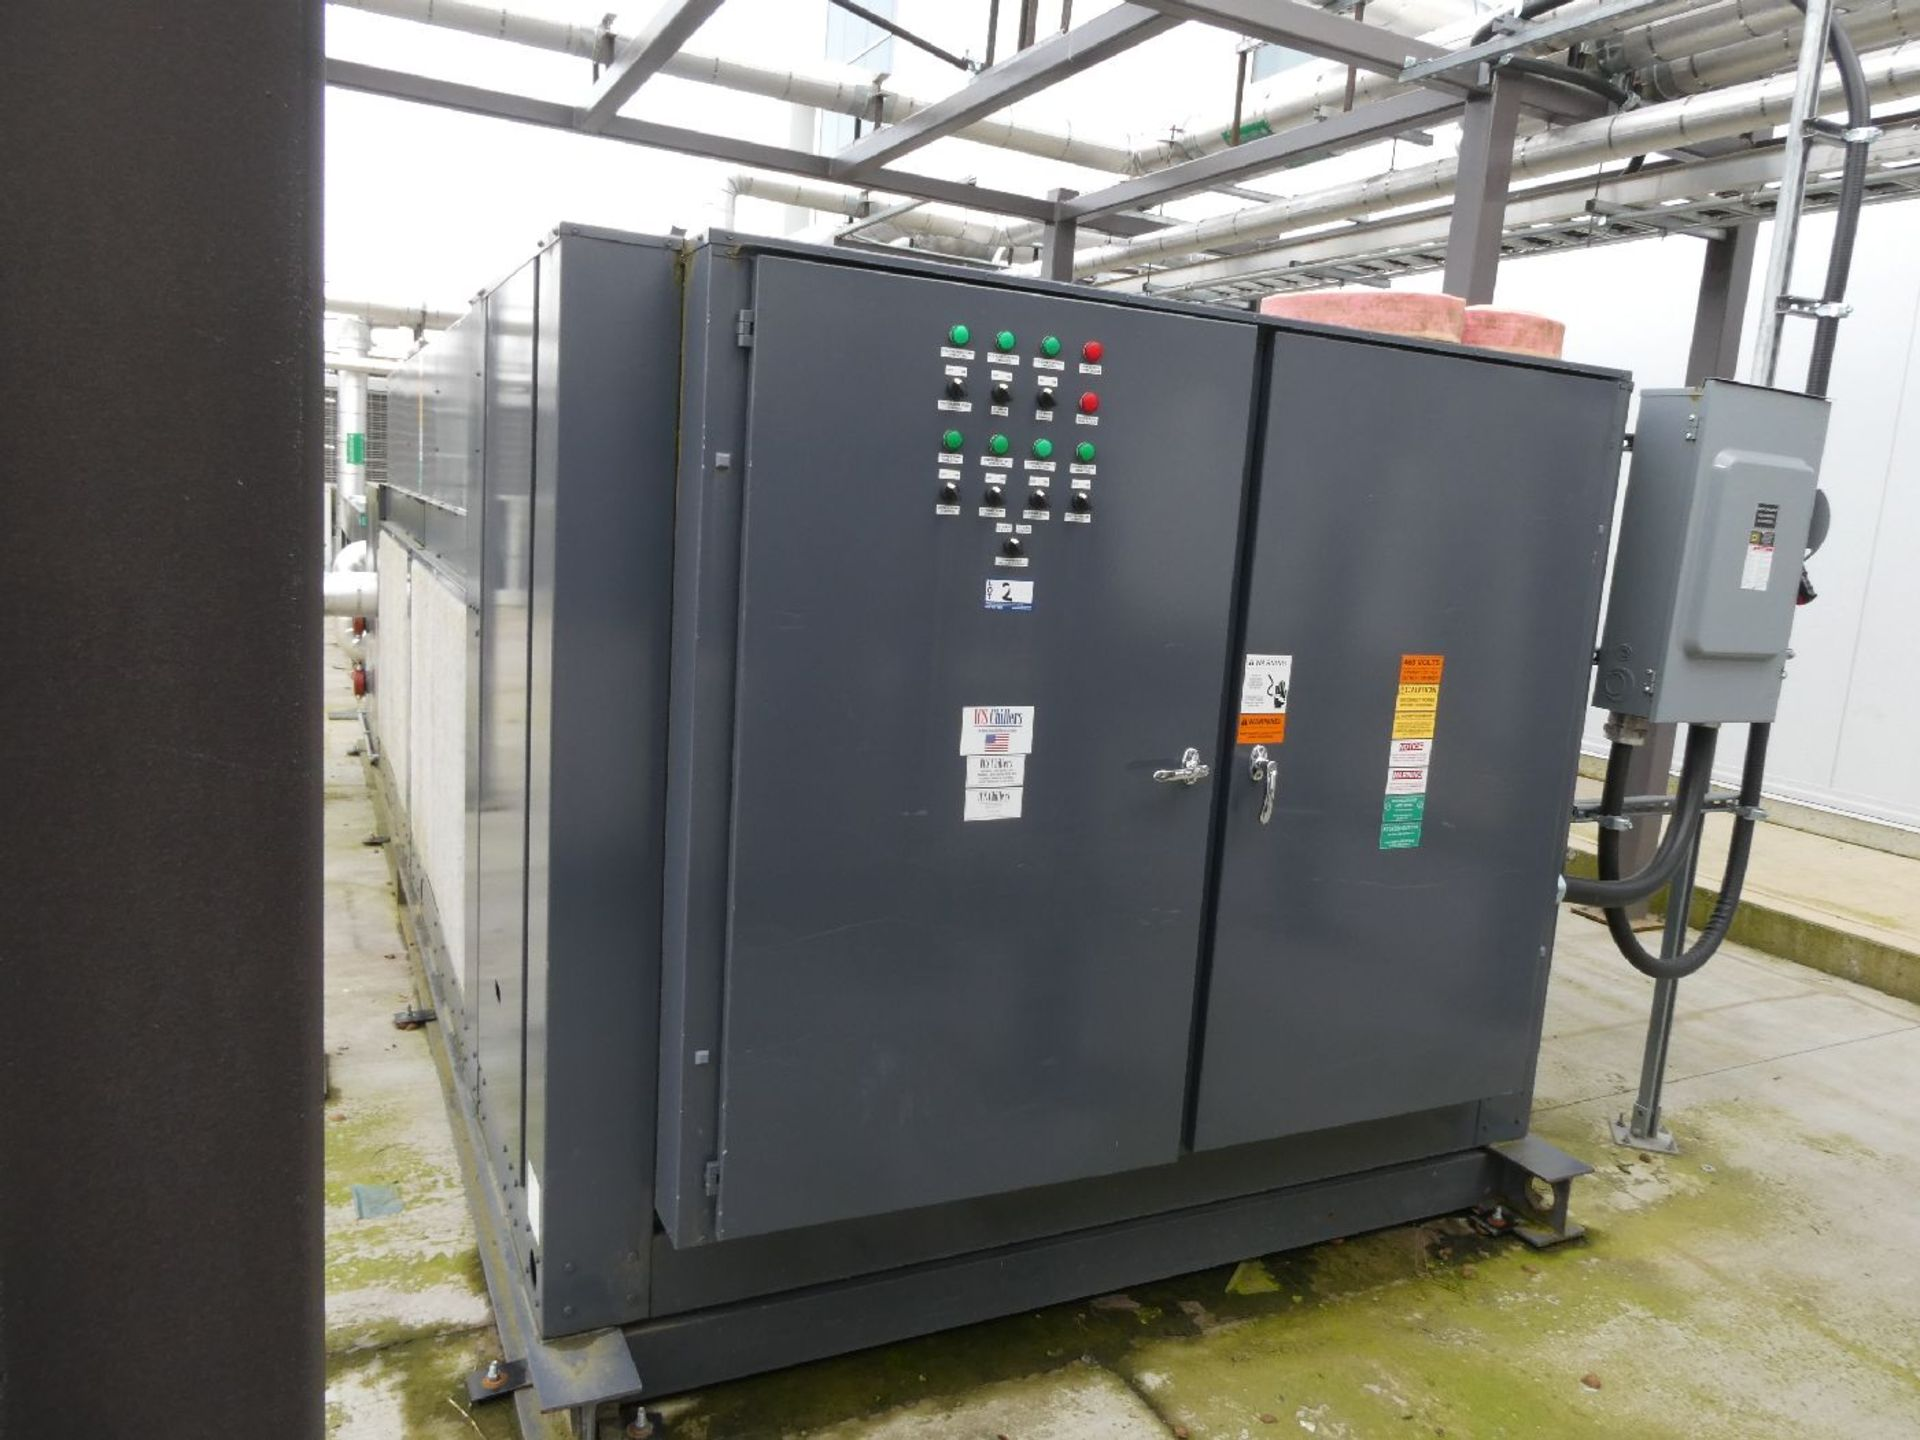 ROTAX Closed Loop Solvent Based Continuous Oil Extraction System - Image 67 of 68